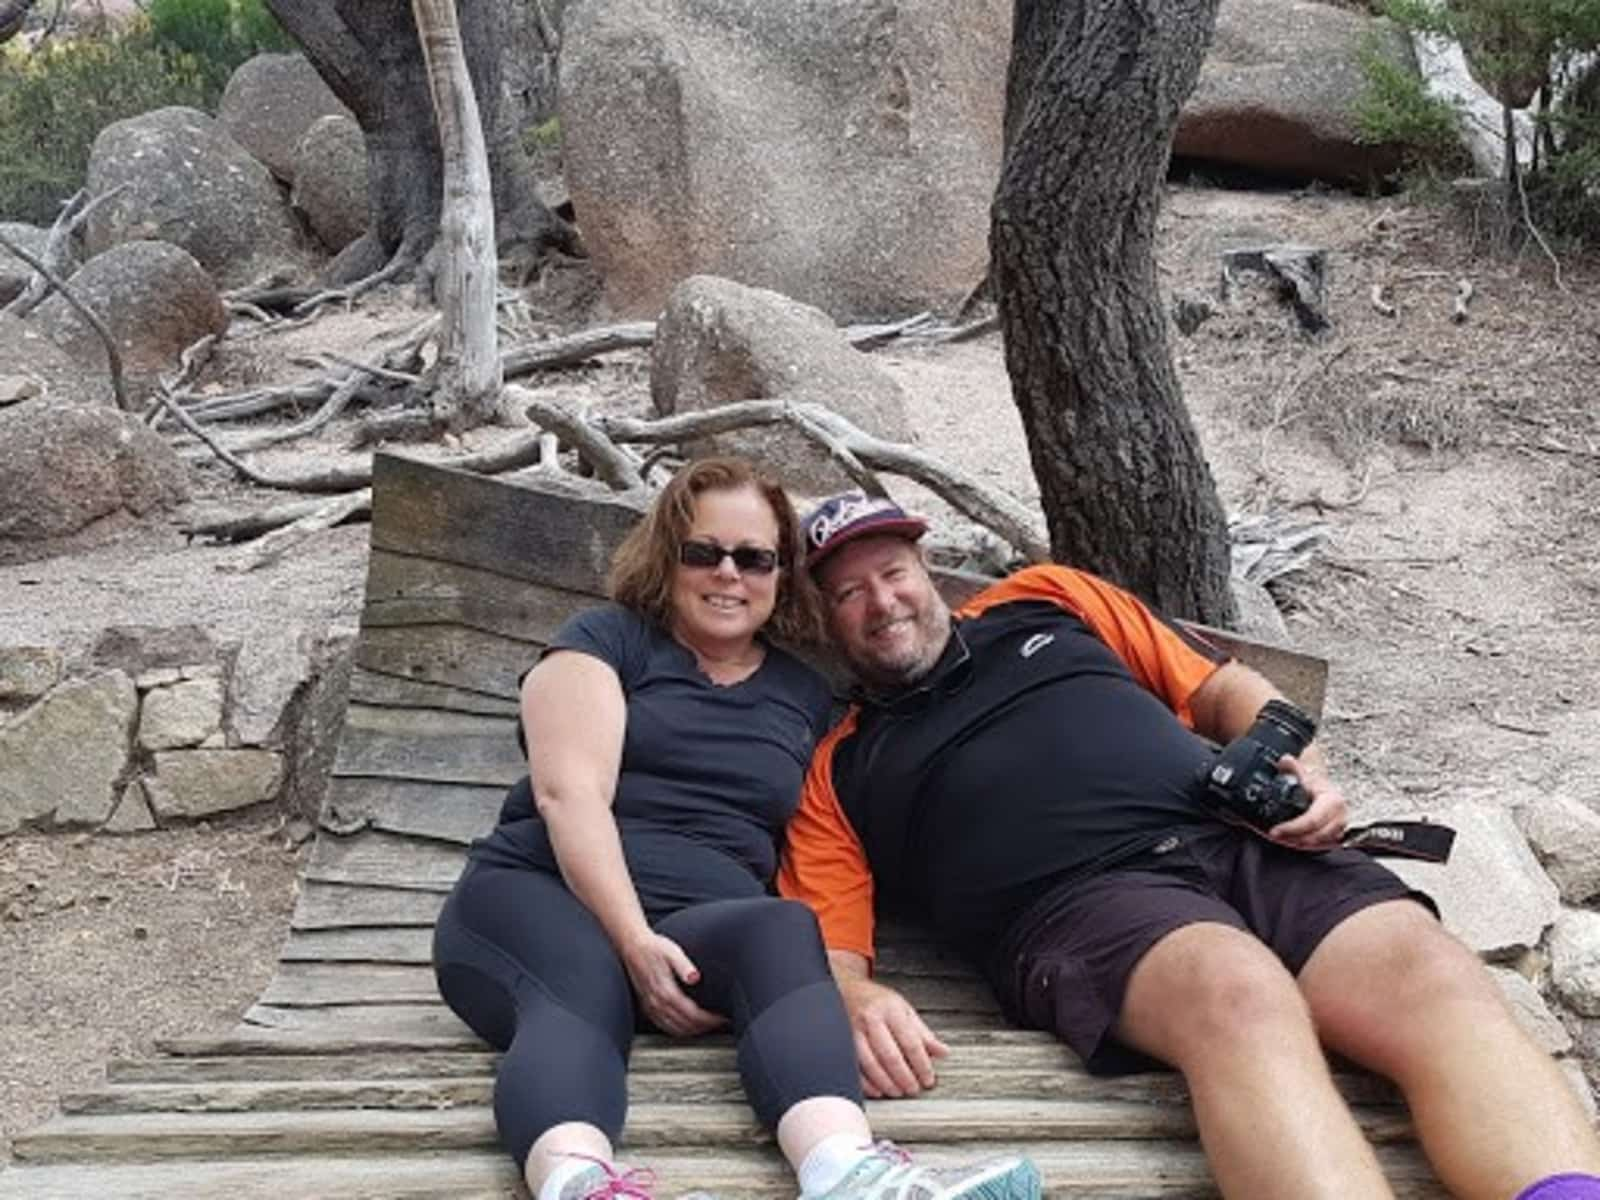 Sharon & Terry from Batemans Bay, New South Wales, Australia